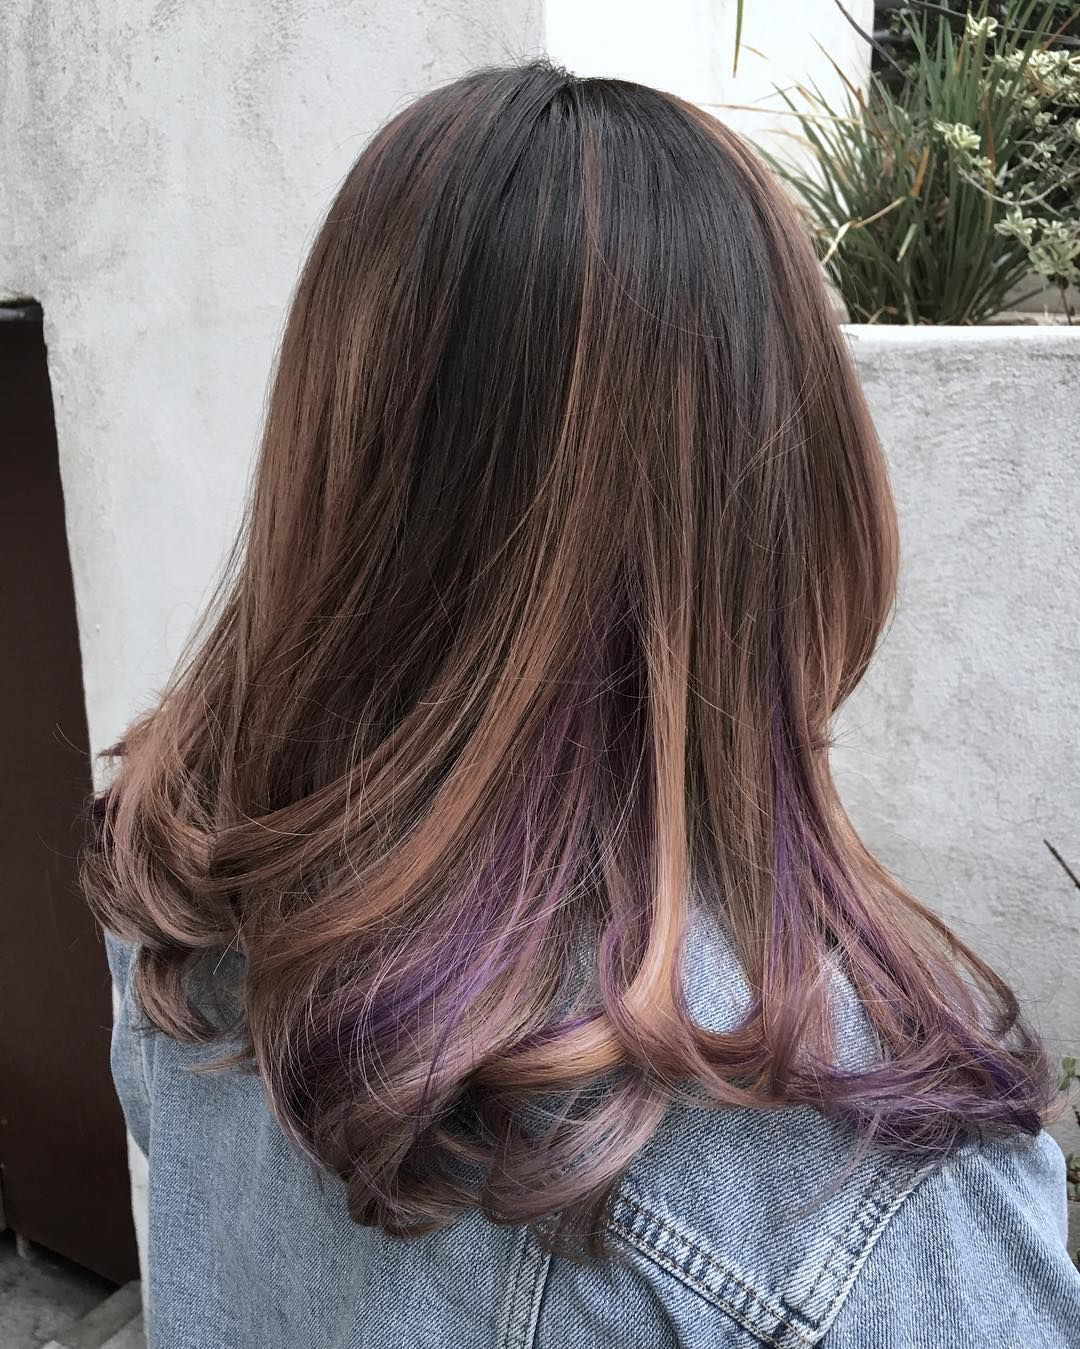 27+ Brown hair color with highlights ideas ideas in 2021